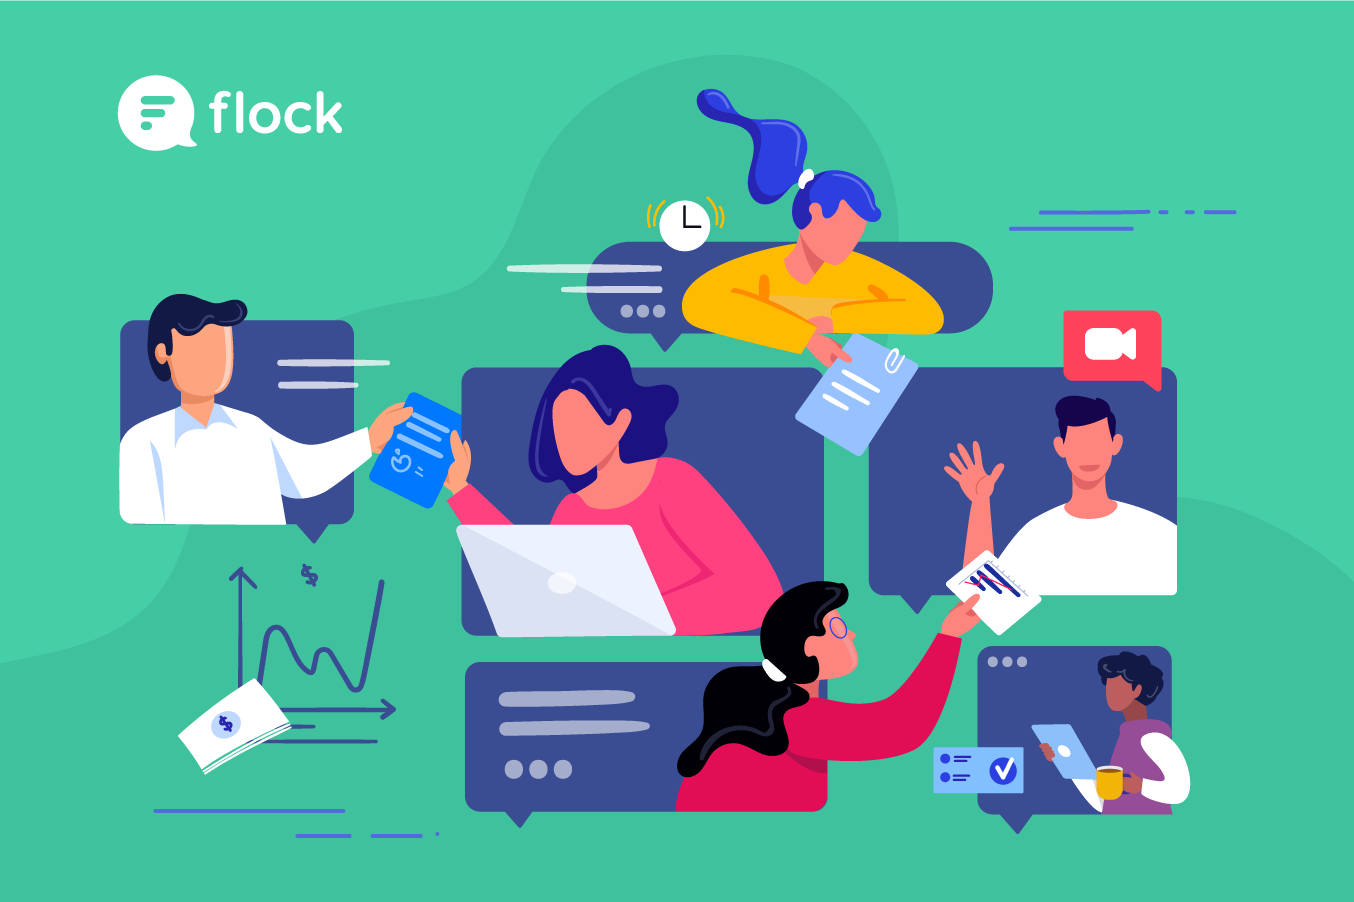 Remote work collaboration in Flock